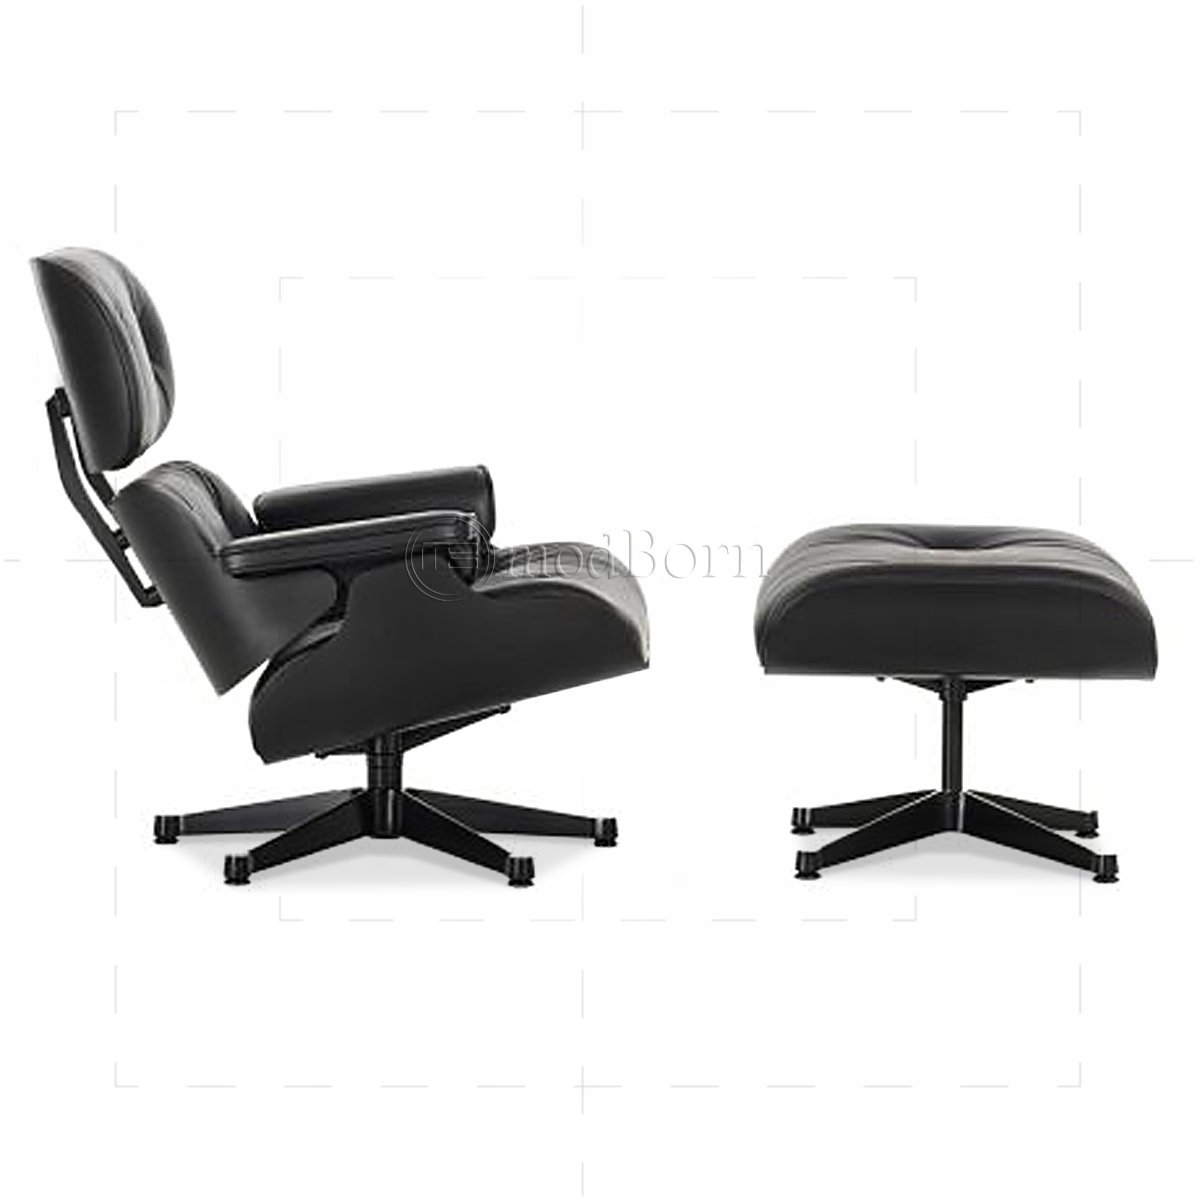 eames style lounge chair and ottoman black leather black wood replica. Black Bedroom Furniture Sets. Home Design Ideas